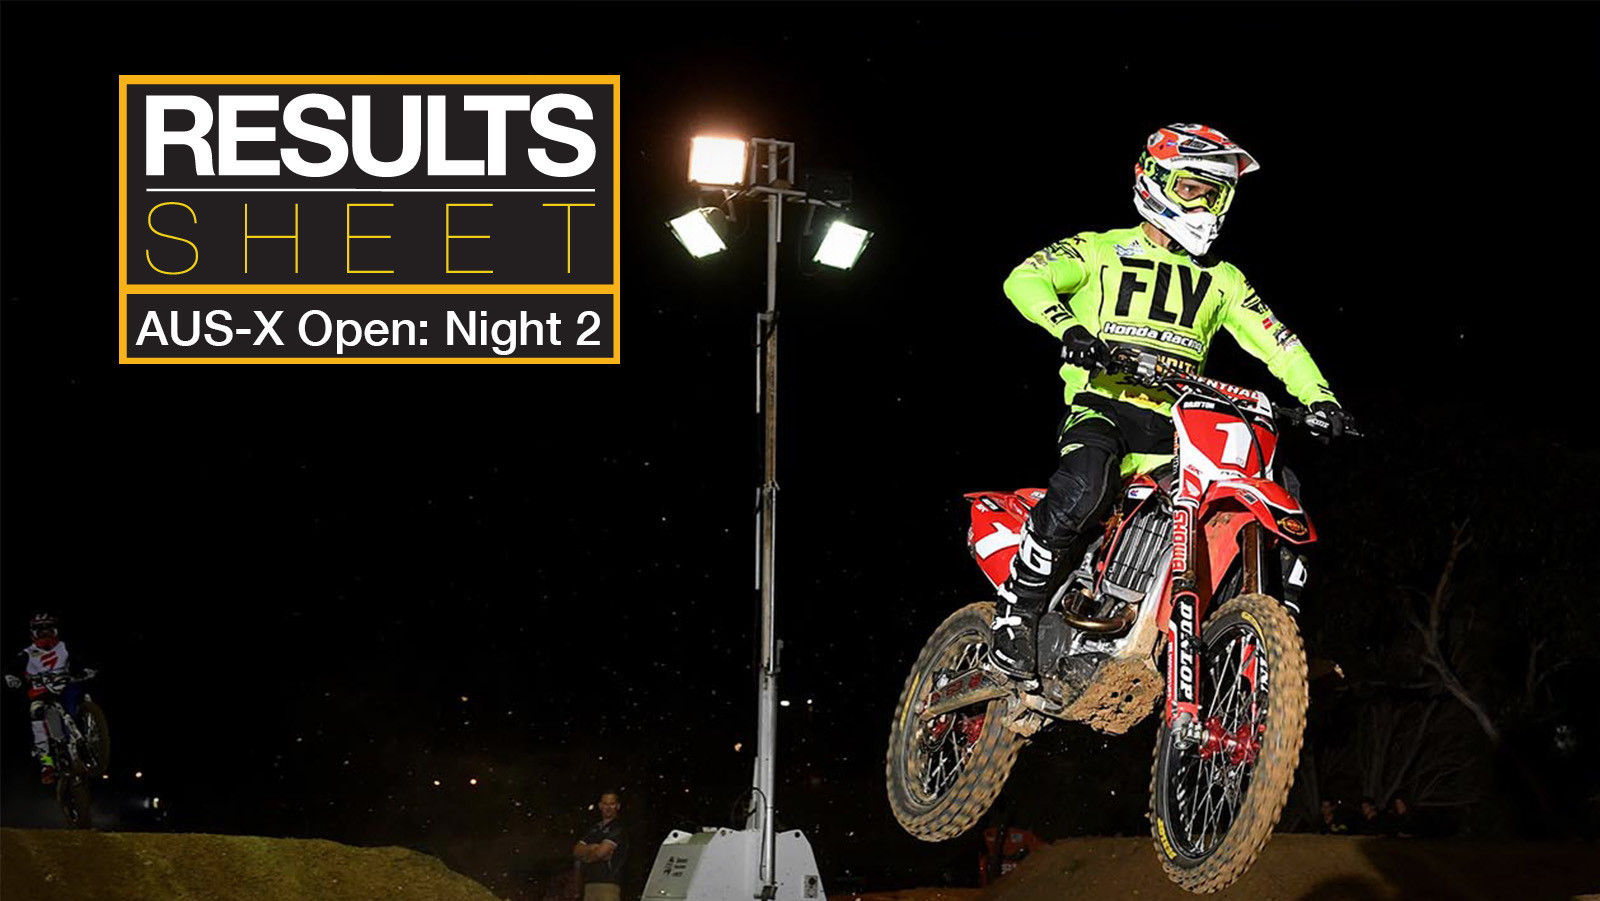 Results Sheet: 2017 Australian Supercross Championship - AUS-X Open Night 2